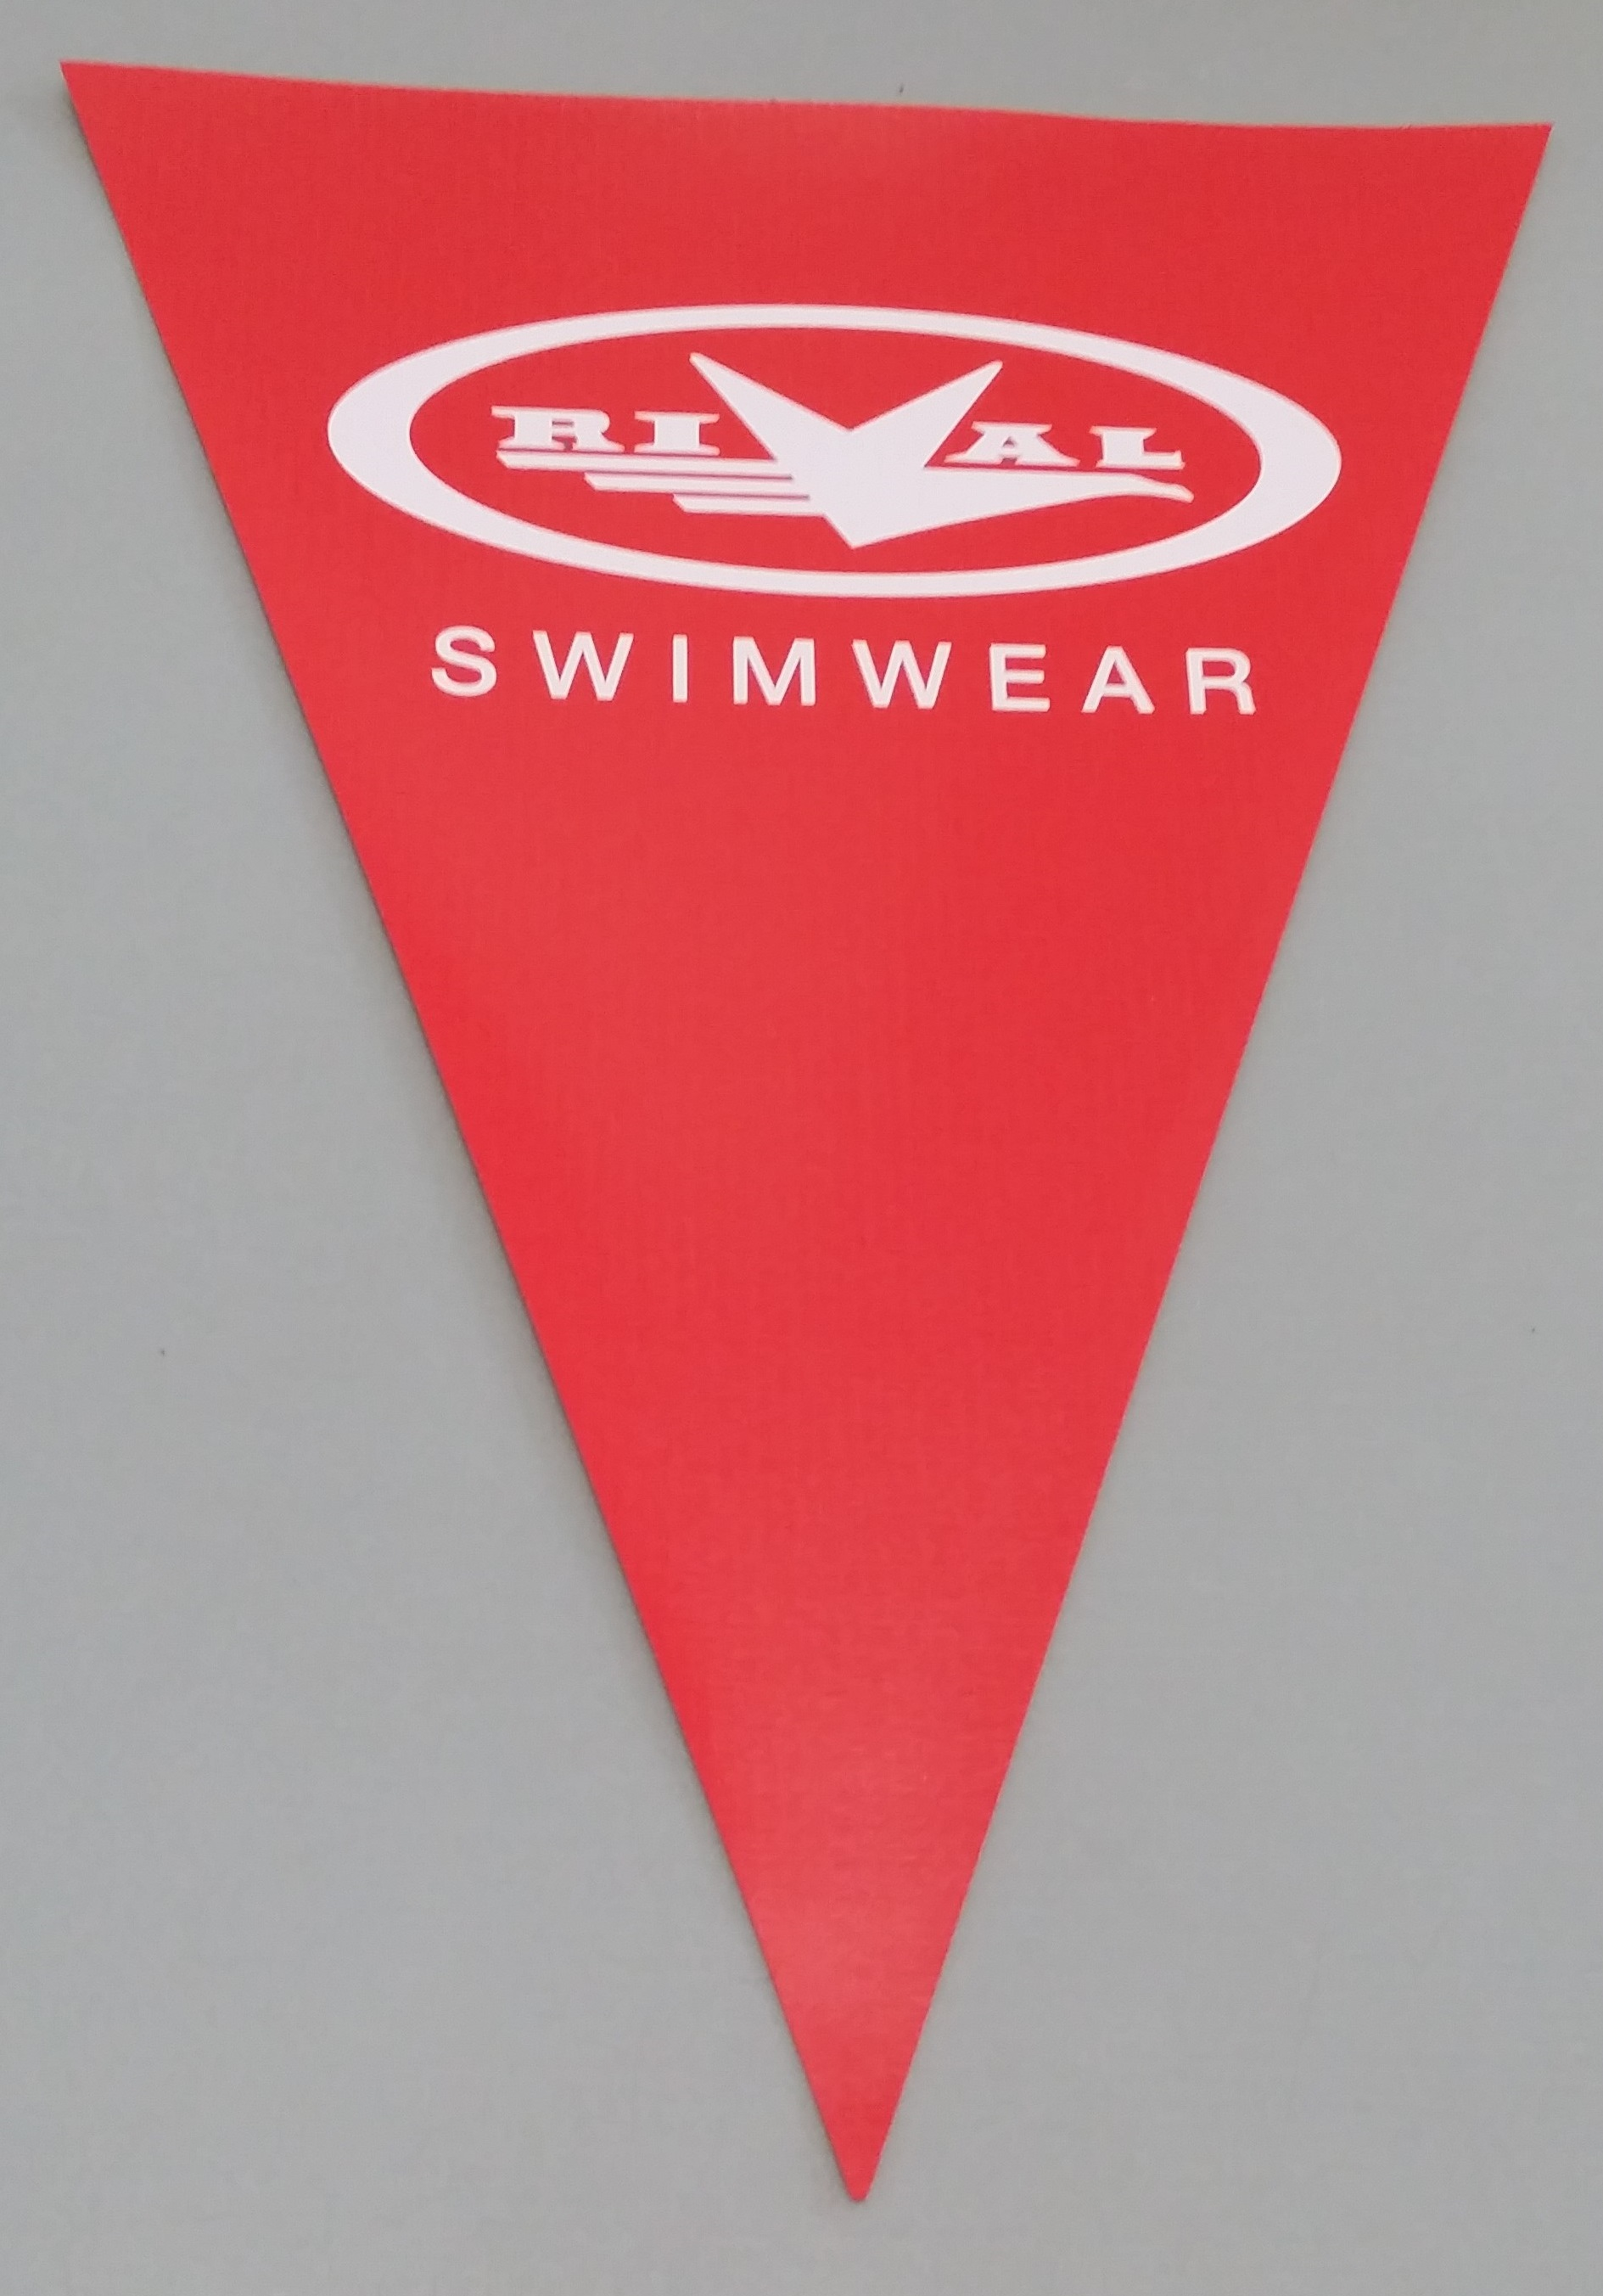 Rival Swimwear (red)